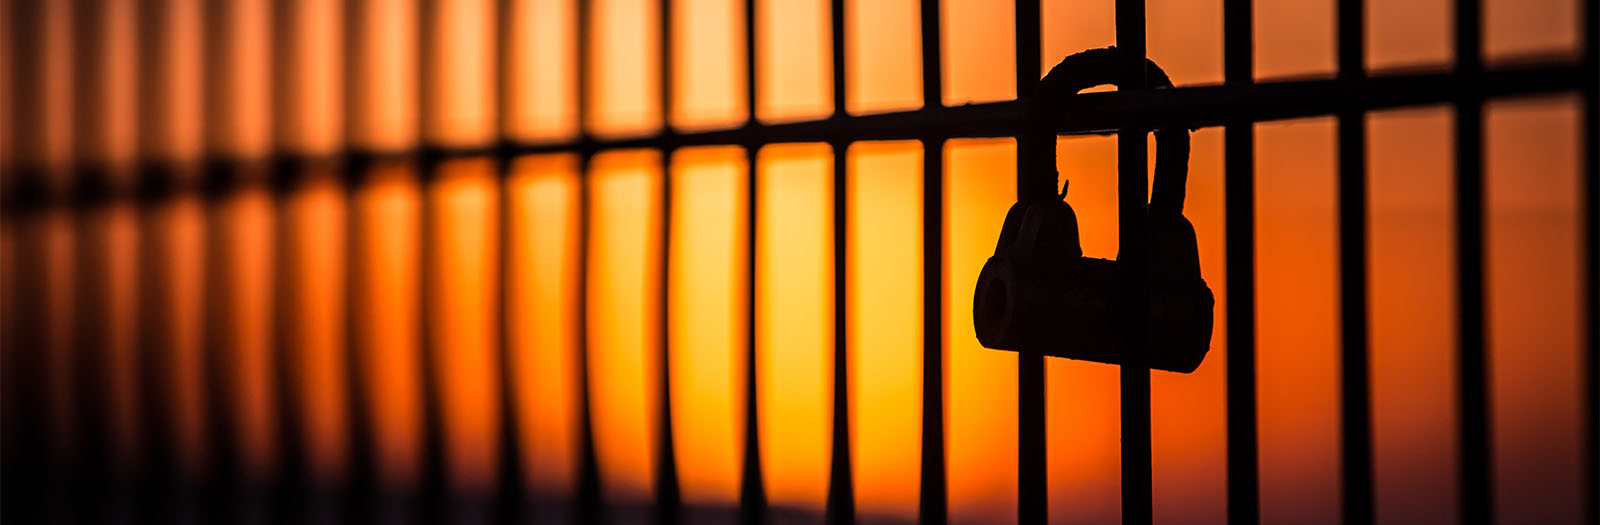 photo of bars with a lock at sunset